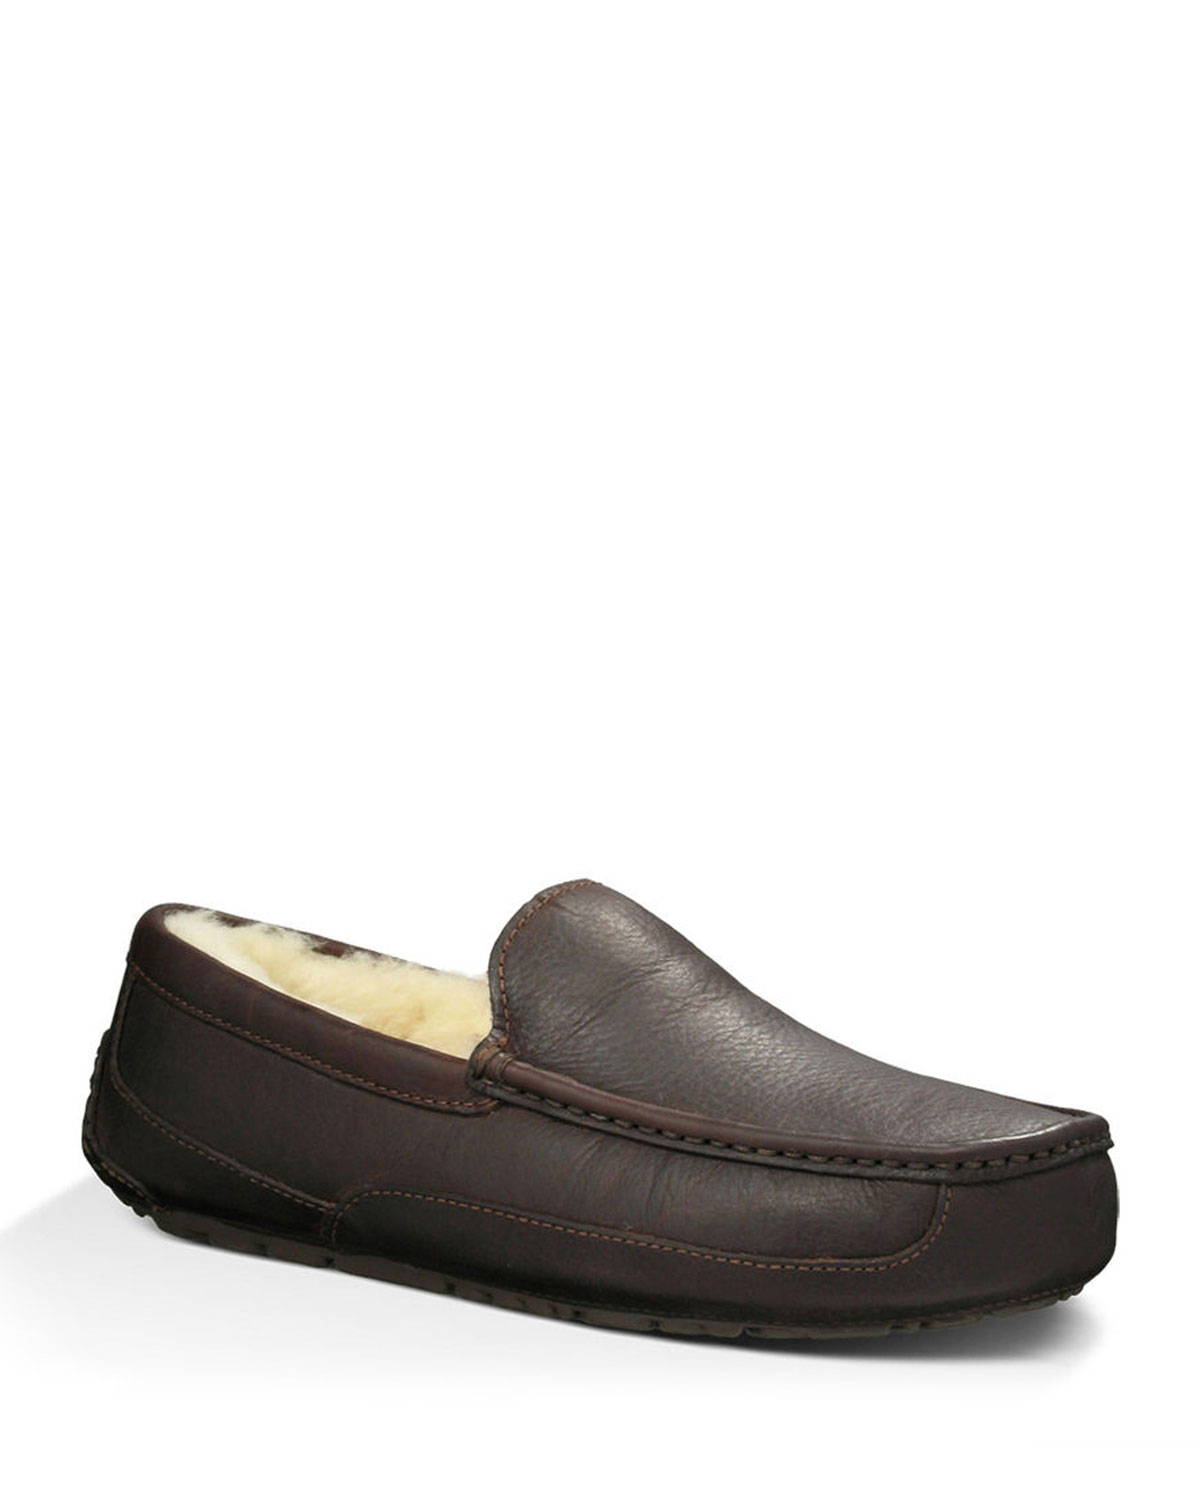 b3b65cddc50 UGG Men s Ascot Water-Resistant Leather Slippers